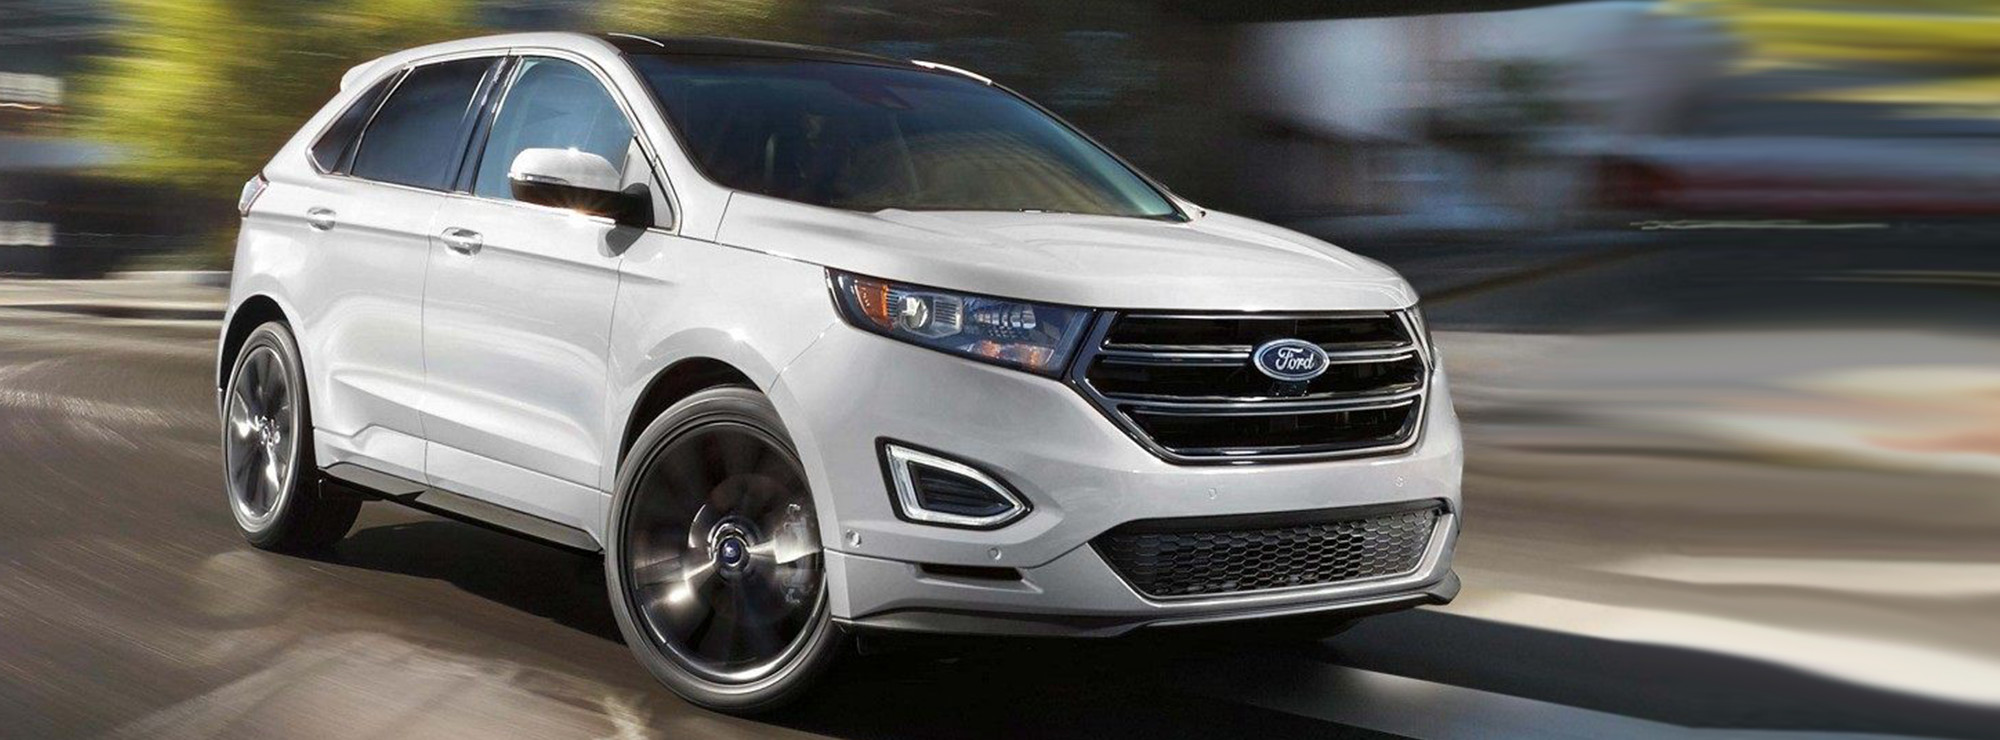 Ford Edge Aftermarket Accessories Jpg X Ford Edge Aftermarket Accessories